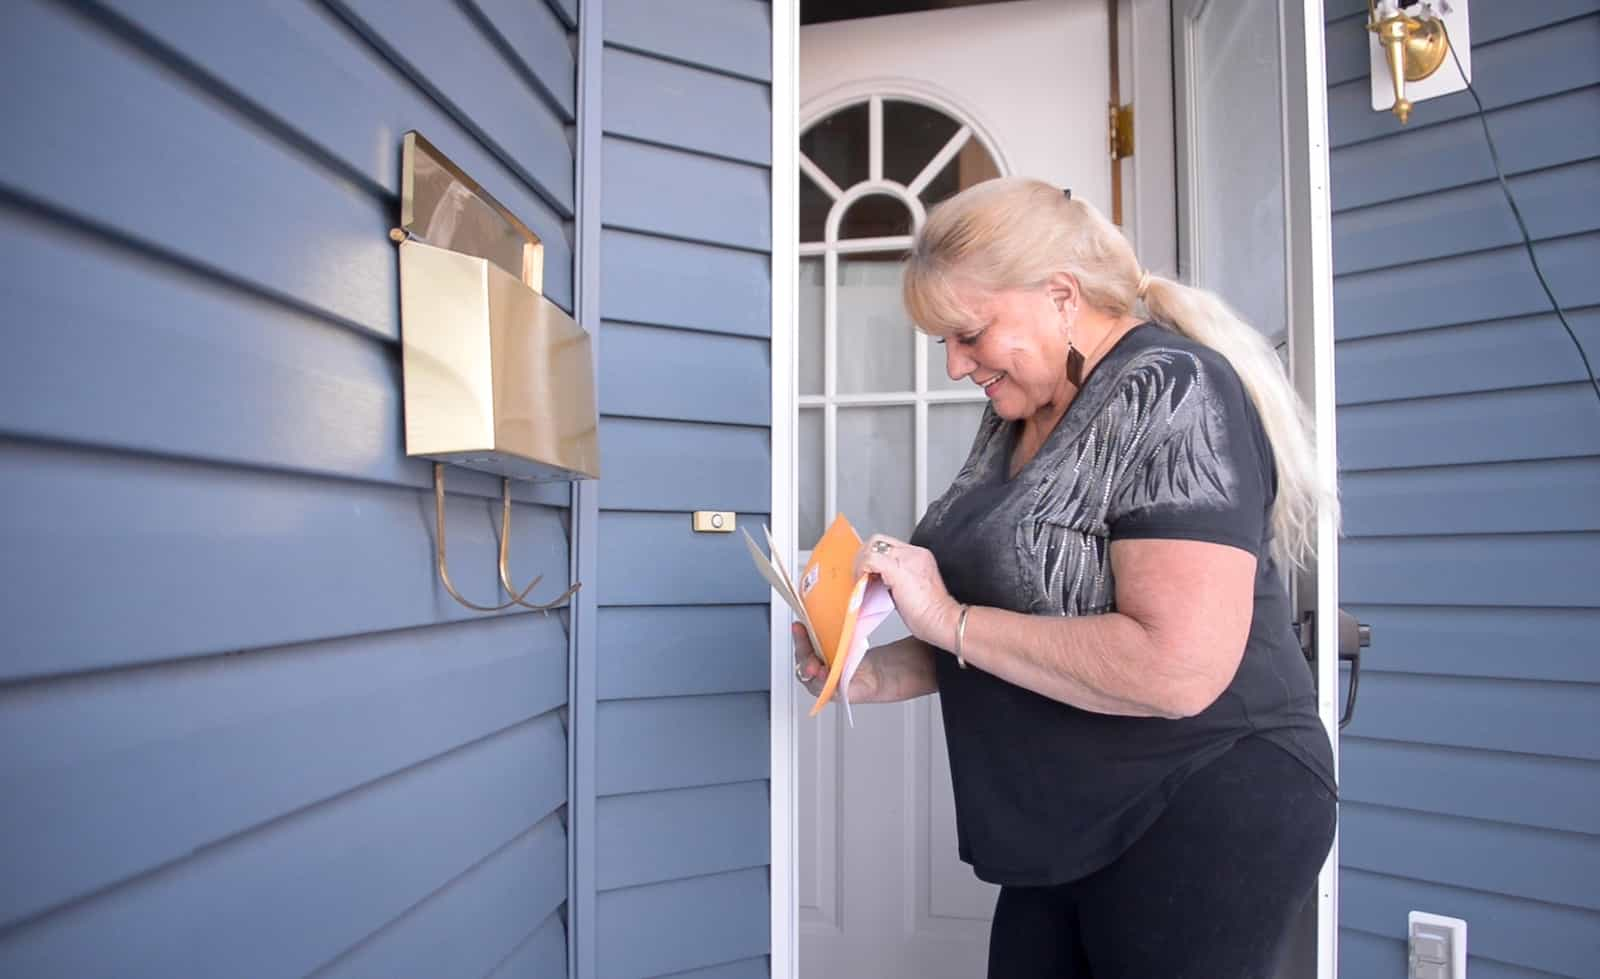 A woman in a black shirt checks the mail out of a box on the front porch of a house.